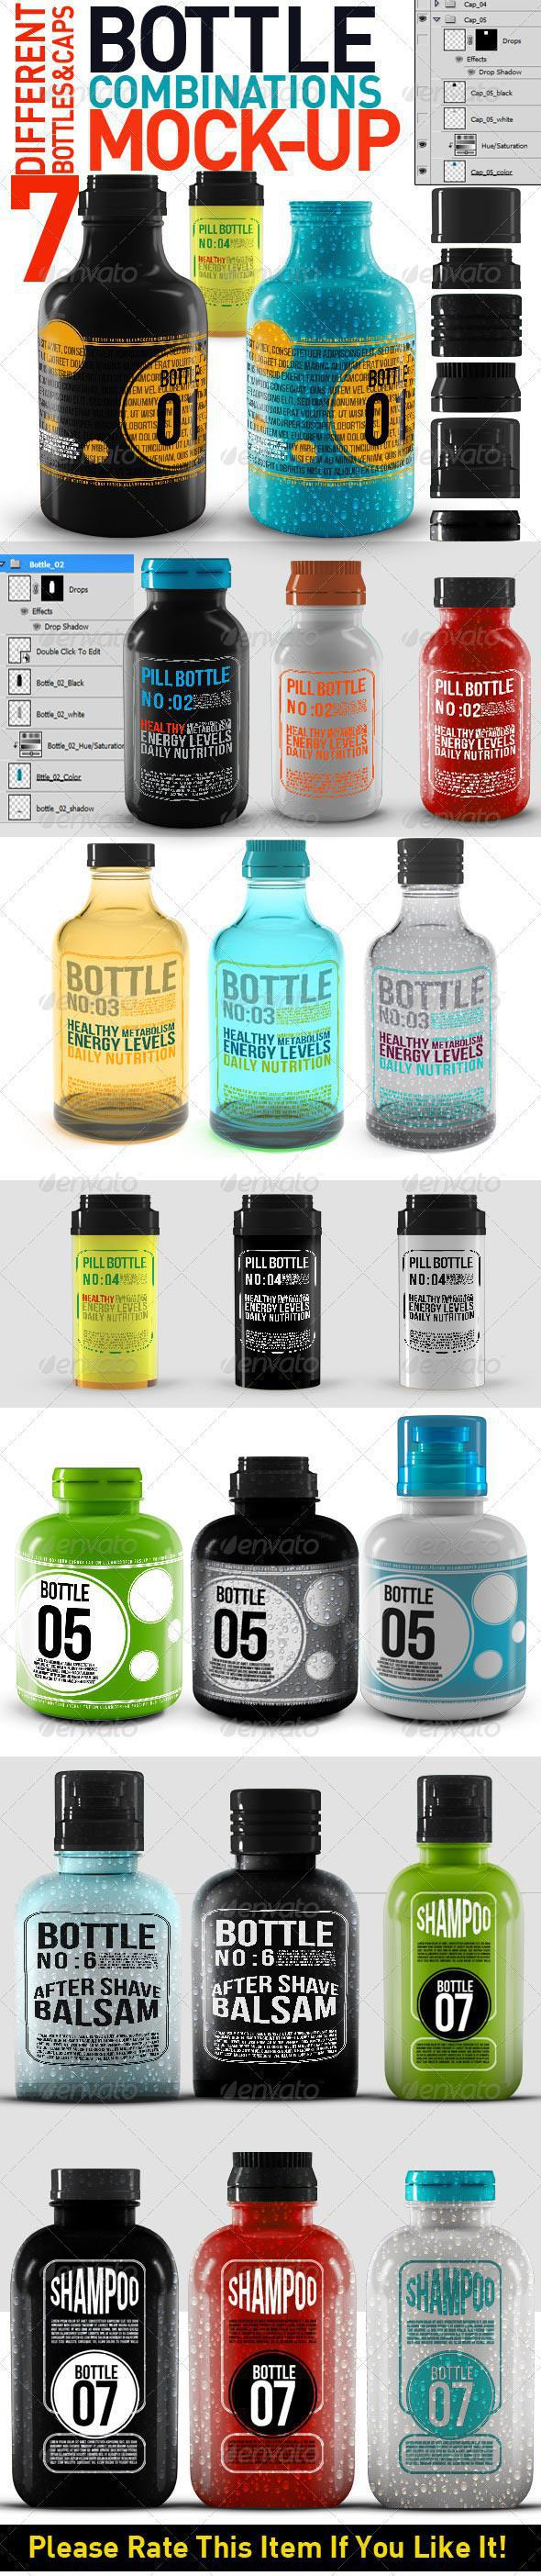 Bottle Combinations Mock Up